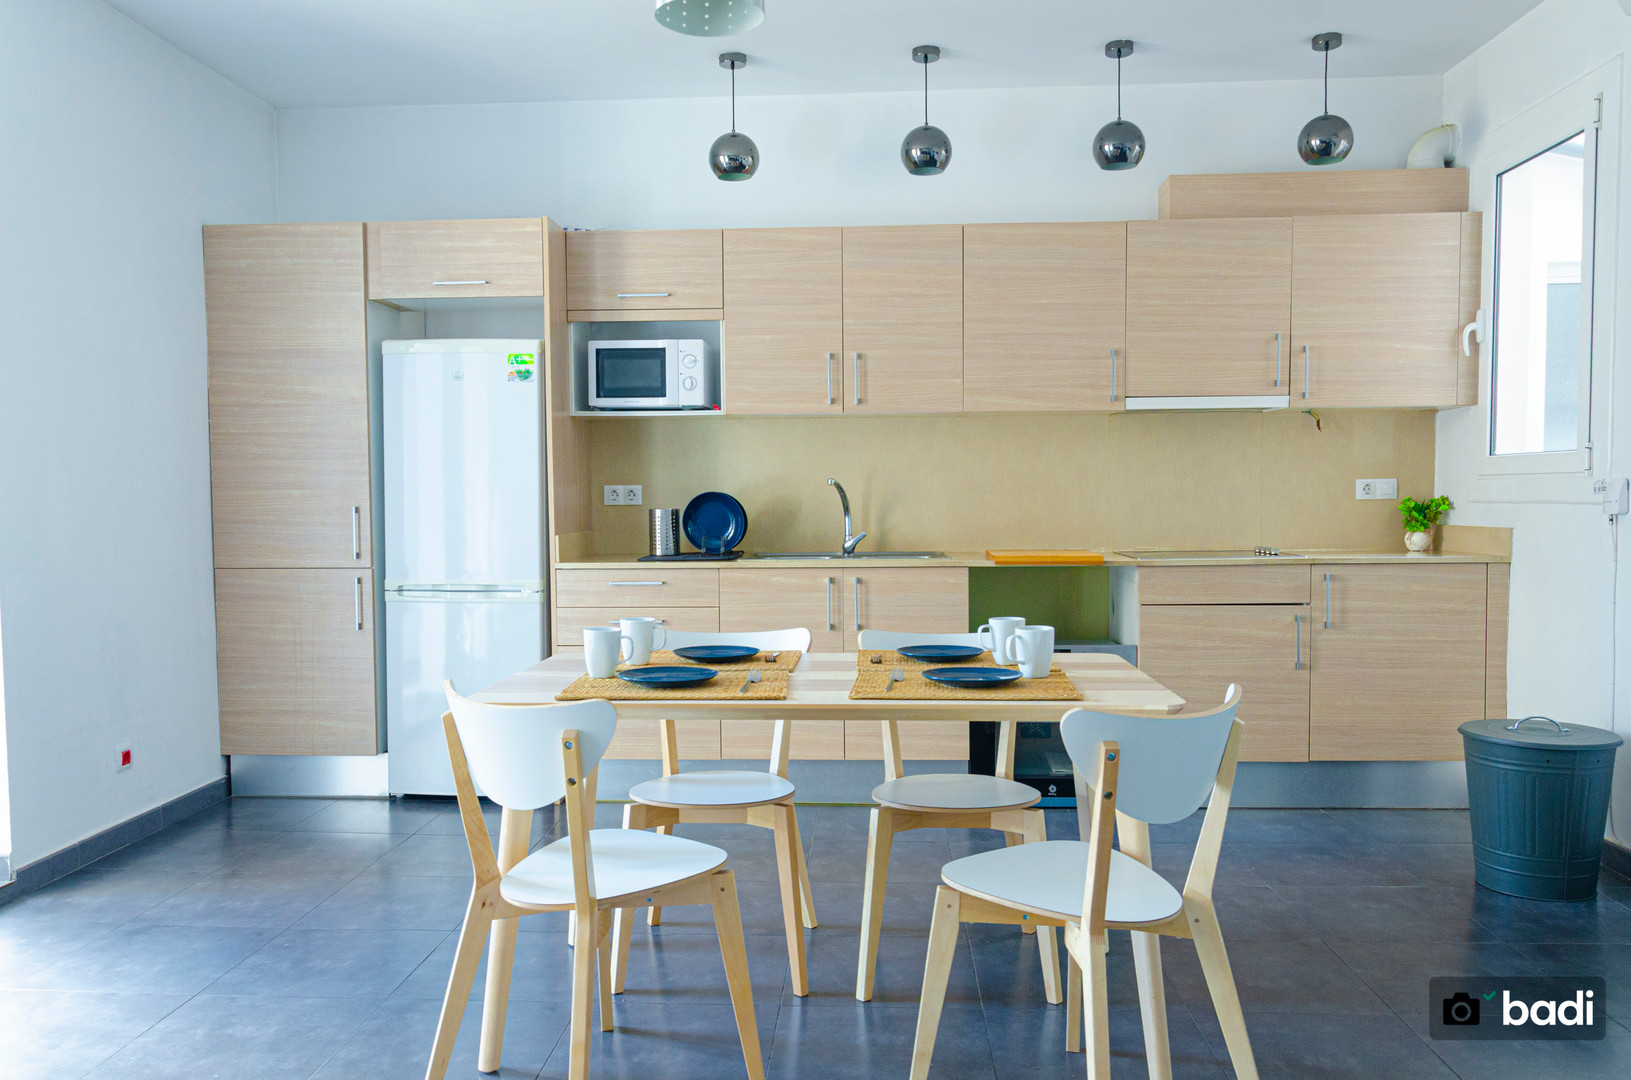 Co-Living enso spaces